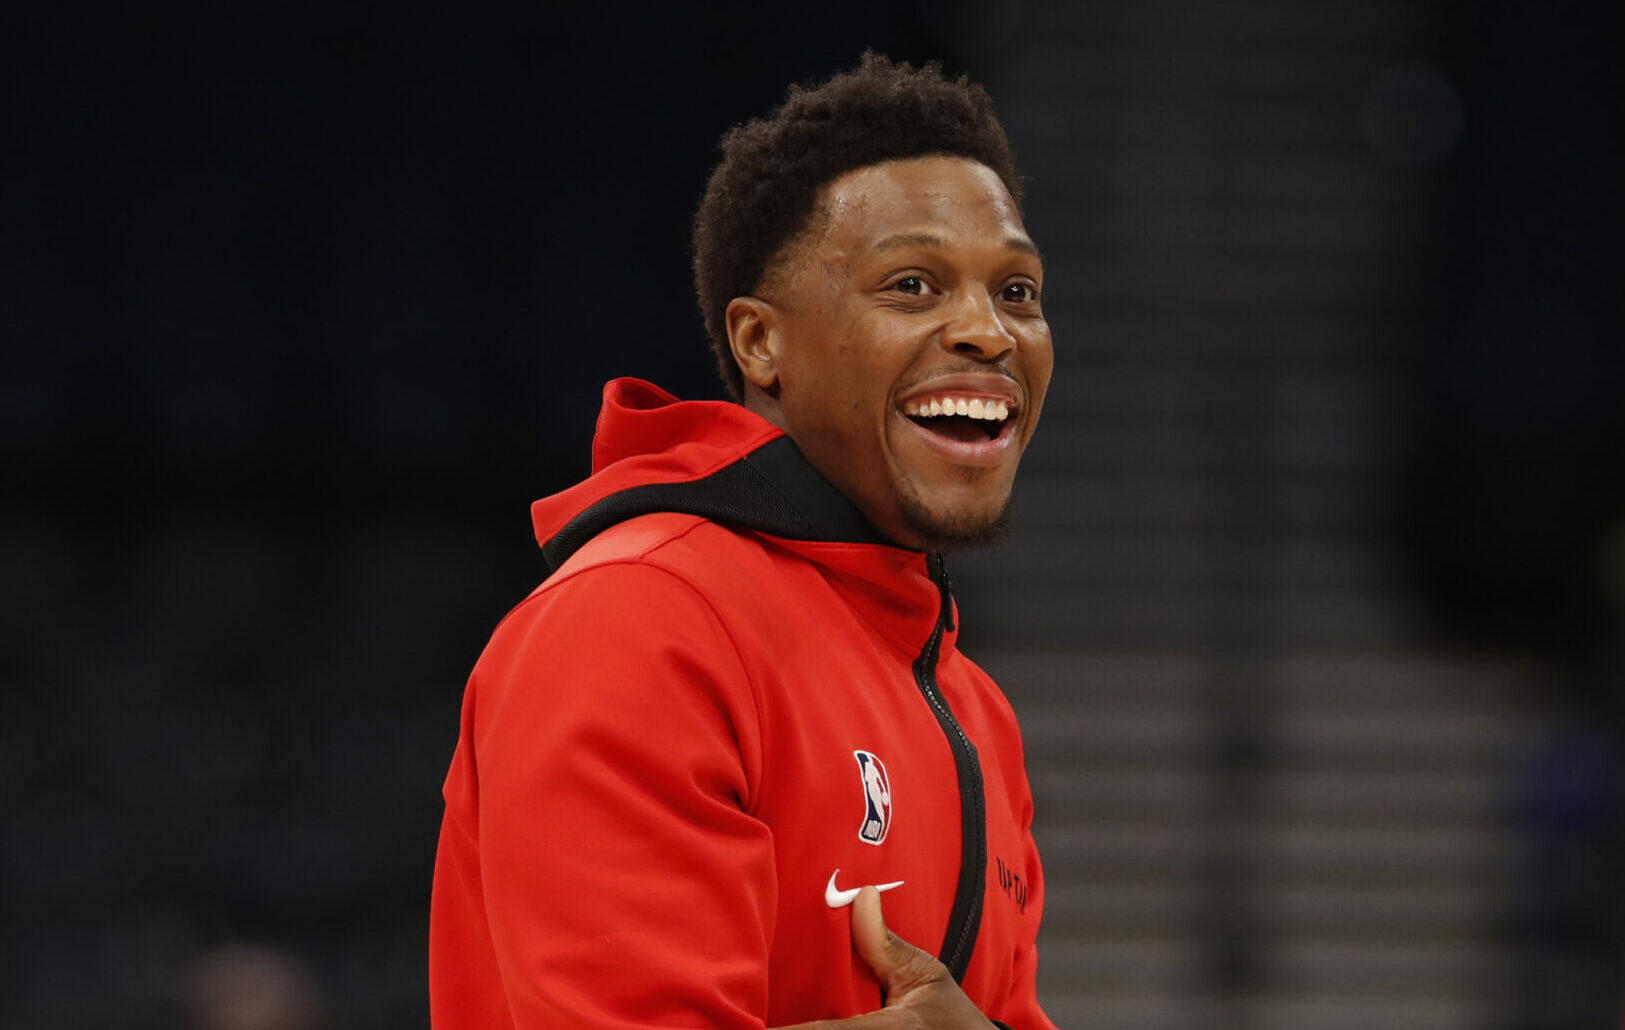 Does addition of Lowry push Miami to next level?